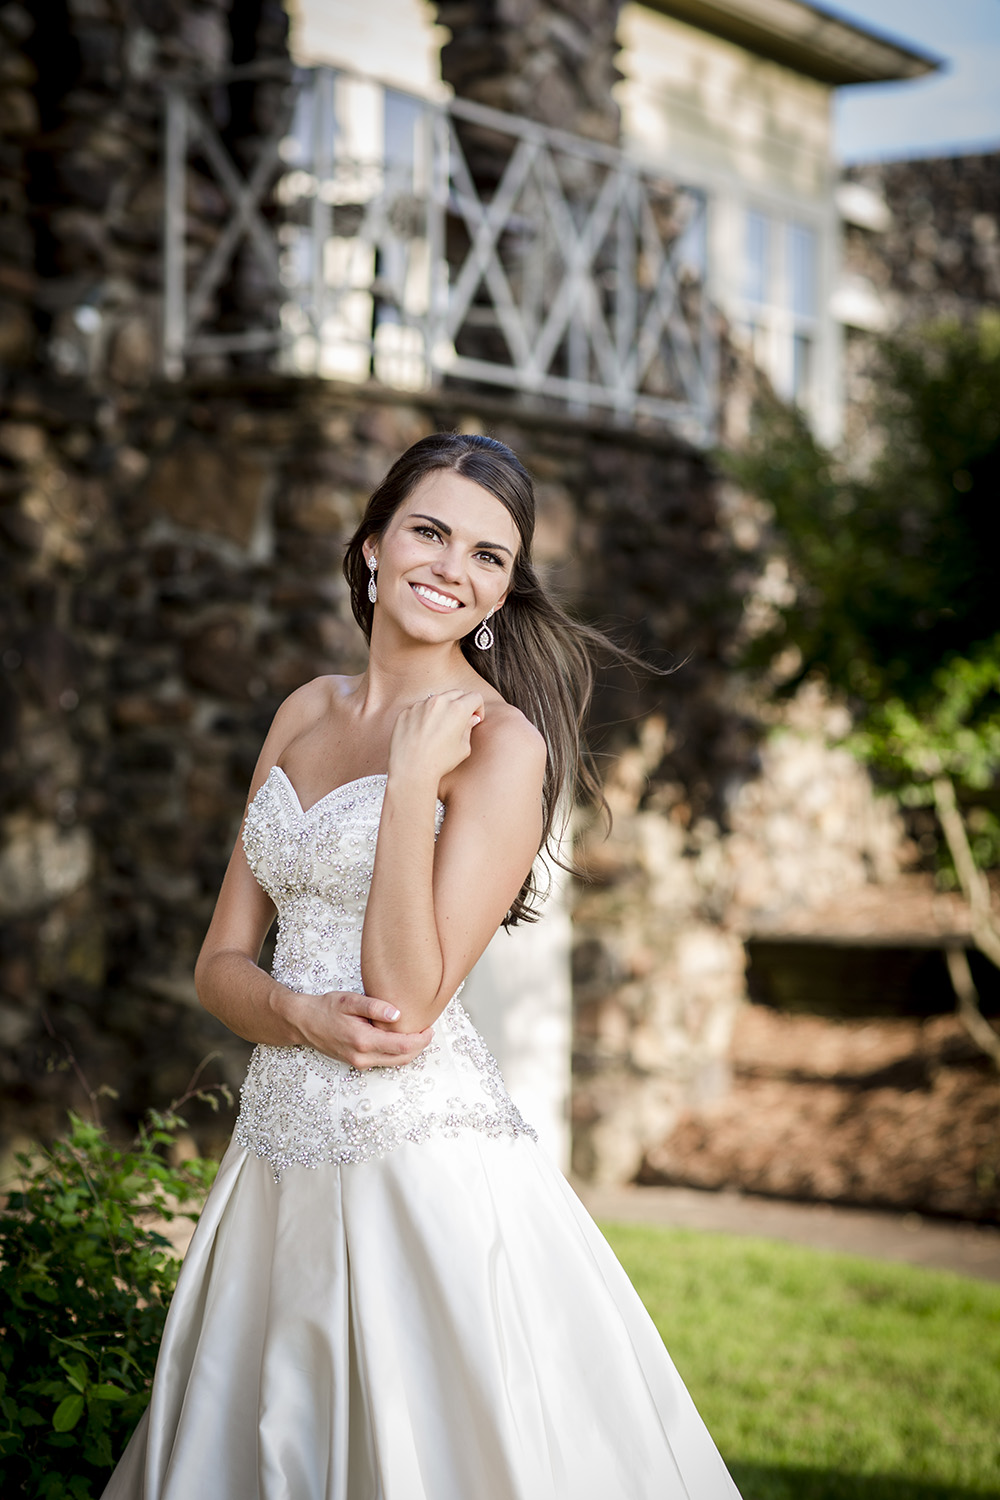 Molly_Bridals_Conway_Country_Club_KES_Weddings_17.JPG